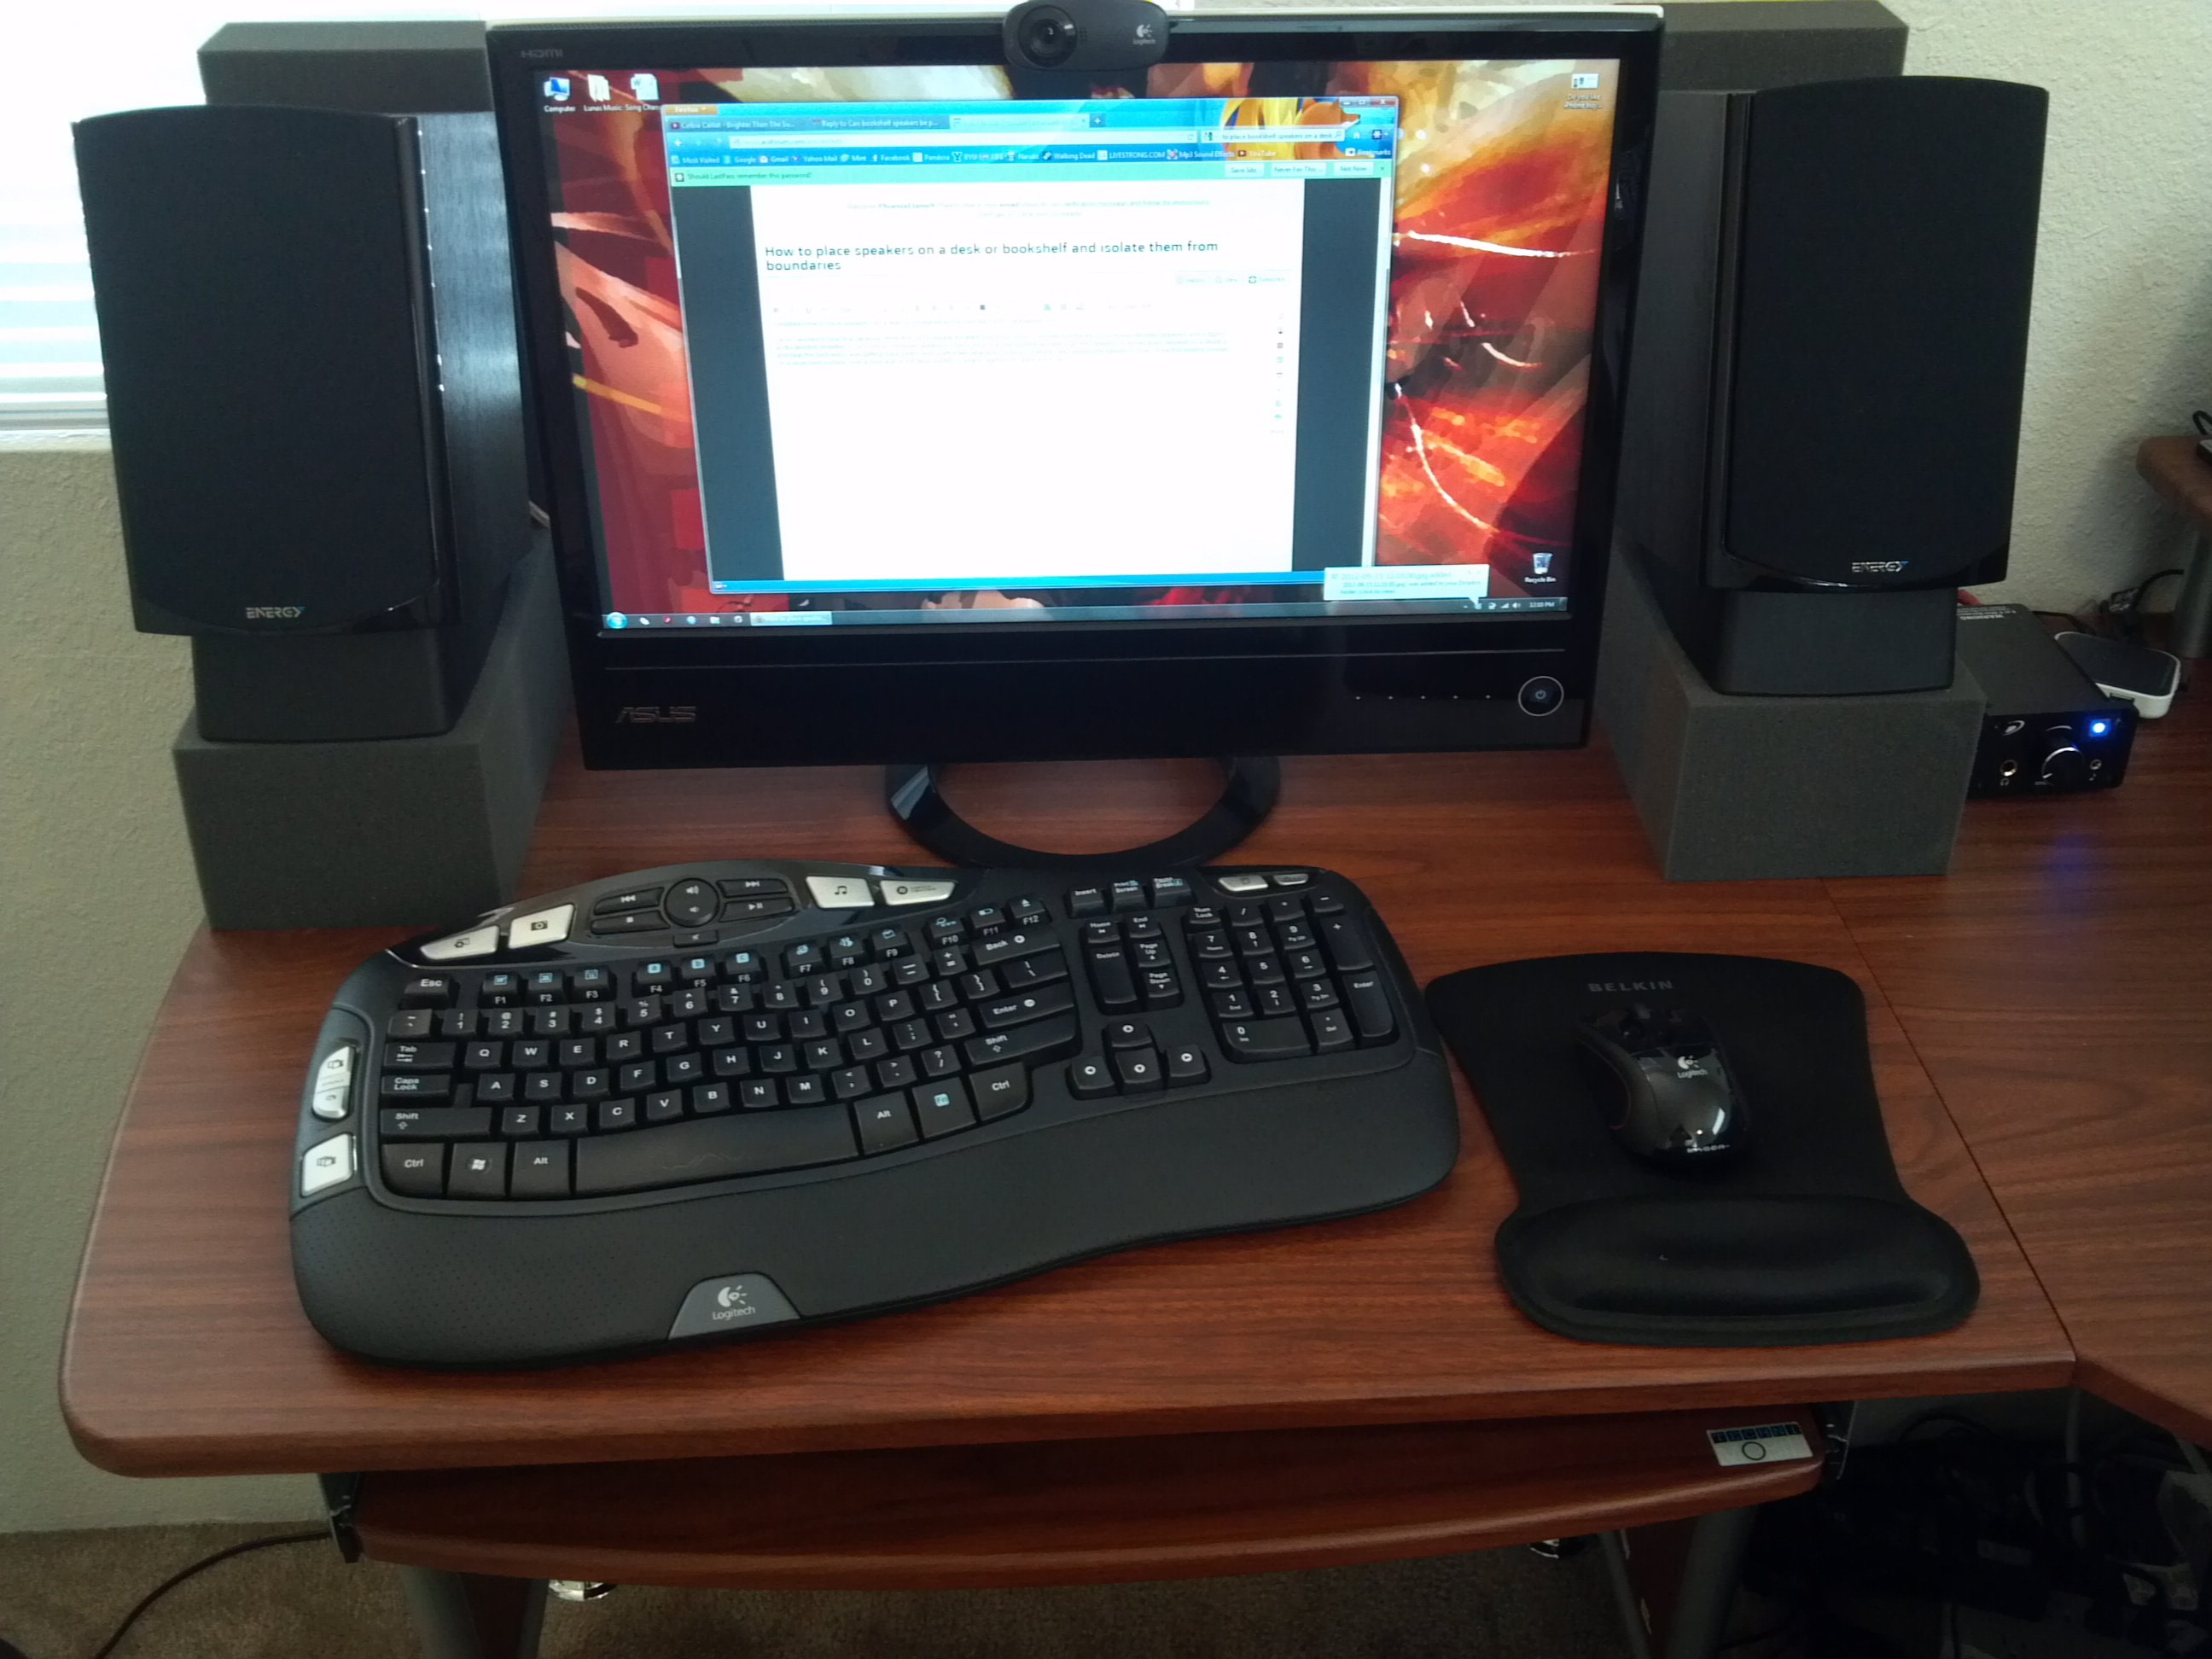 How To Place Speakers On A Desk Or Bookshelf And Isolate Them From Boundaries Avs Forum Home Theater Discussions Reviews